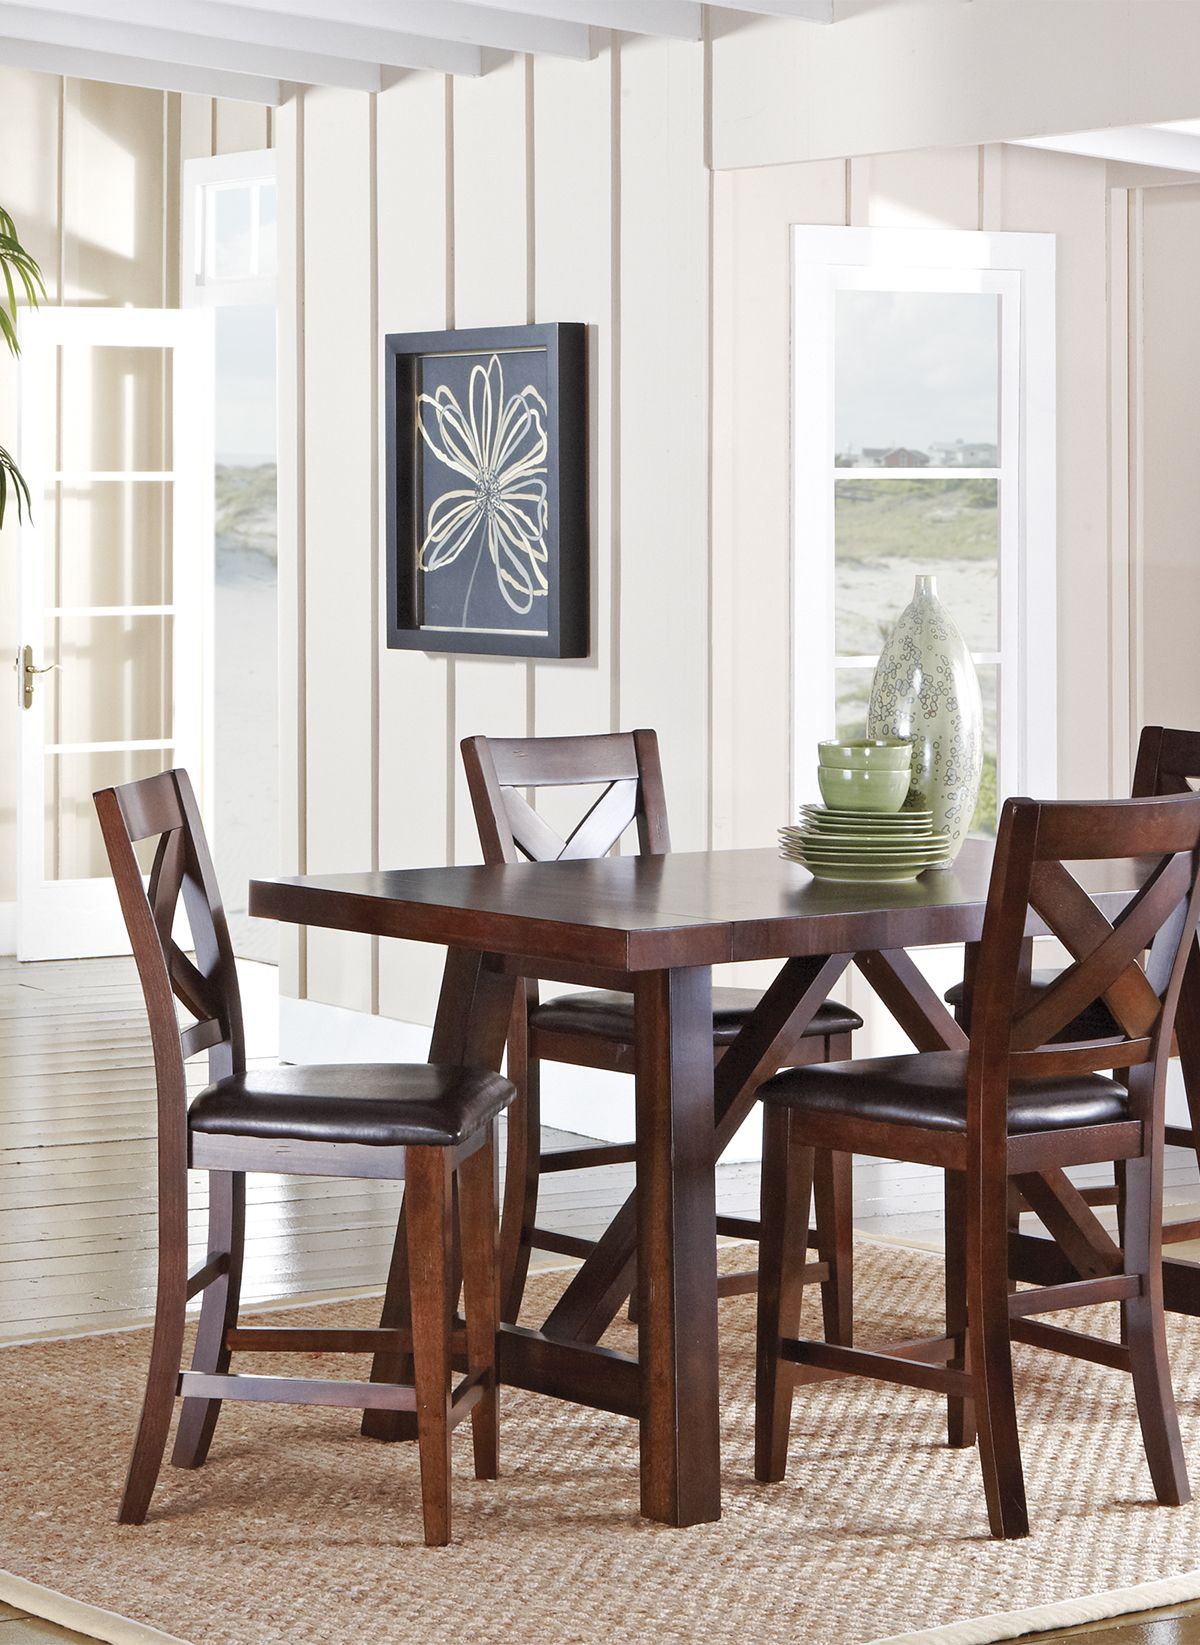 Mango Burnished Walnut Pc Counter Height Dining Room Pinterest - Mango burnished walnut dining table